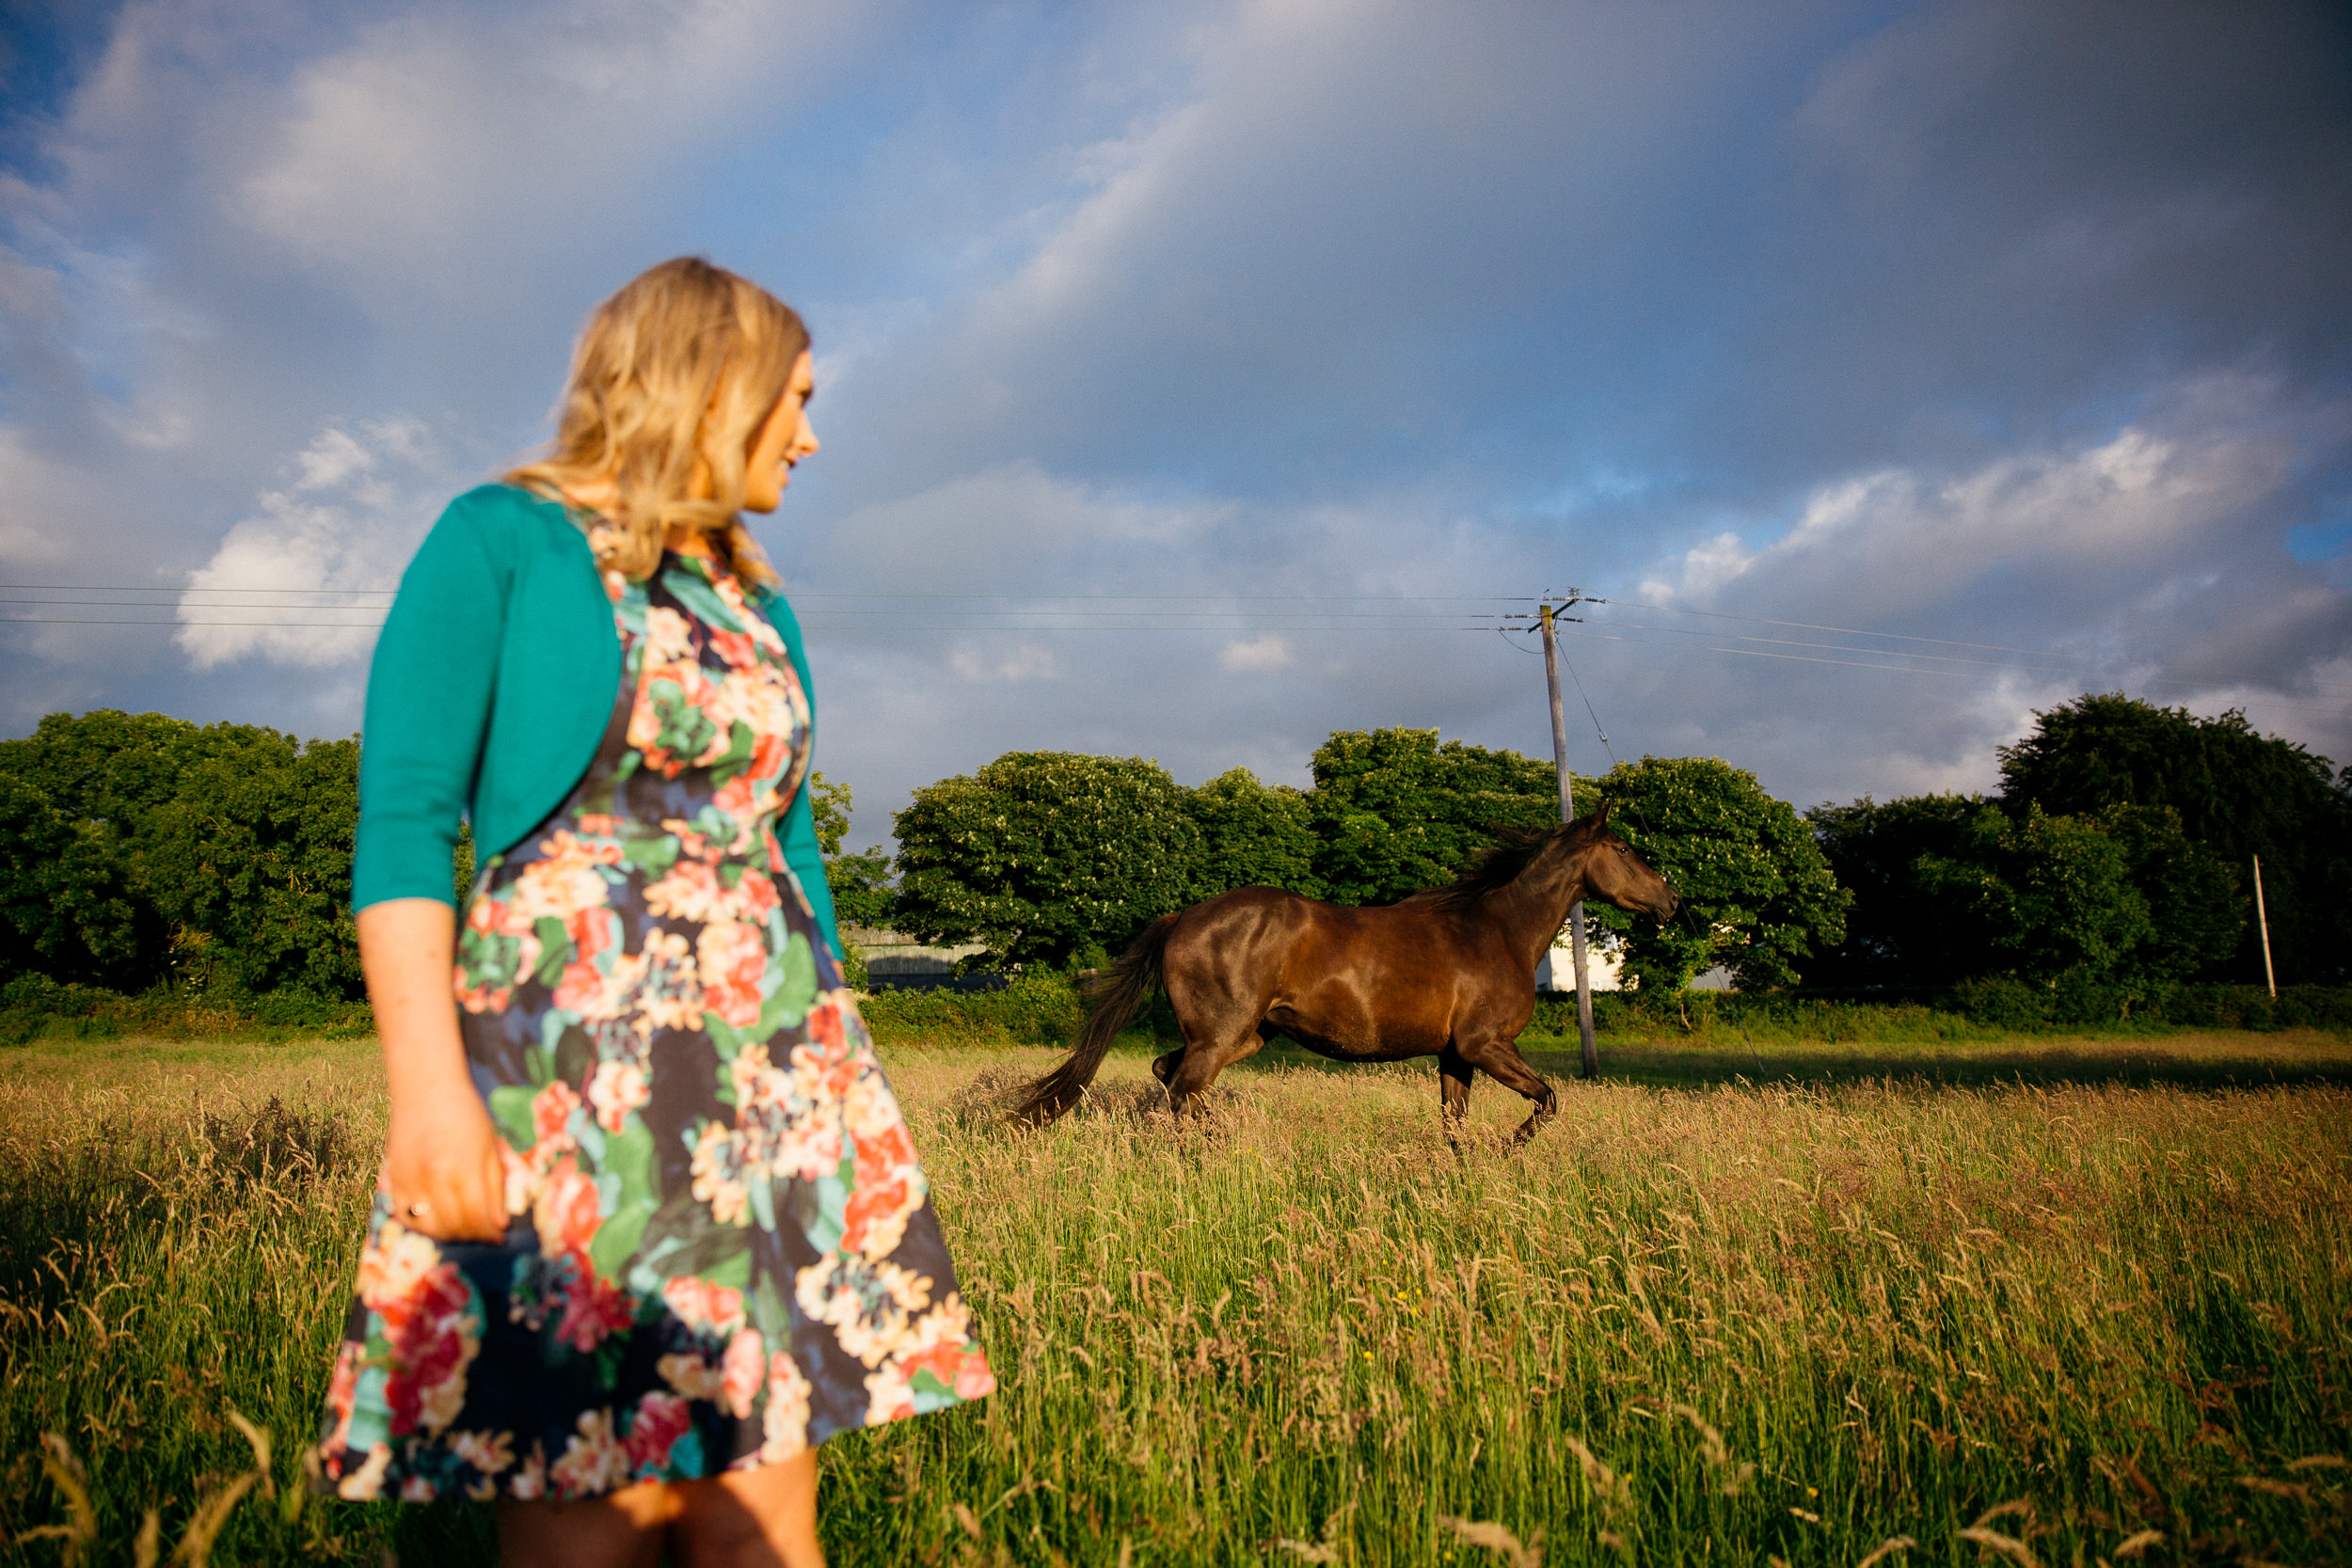 clairebyrnephotography-wedding-photography-ireland-engagement-sunset-farm-horses-35.jpg